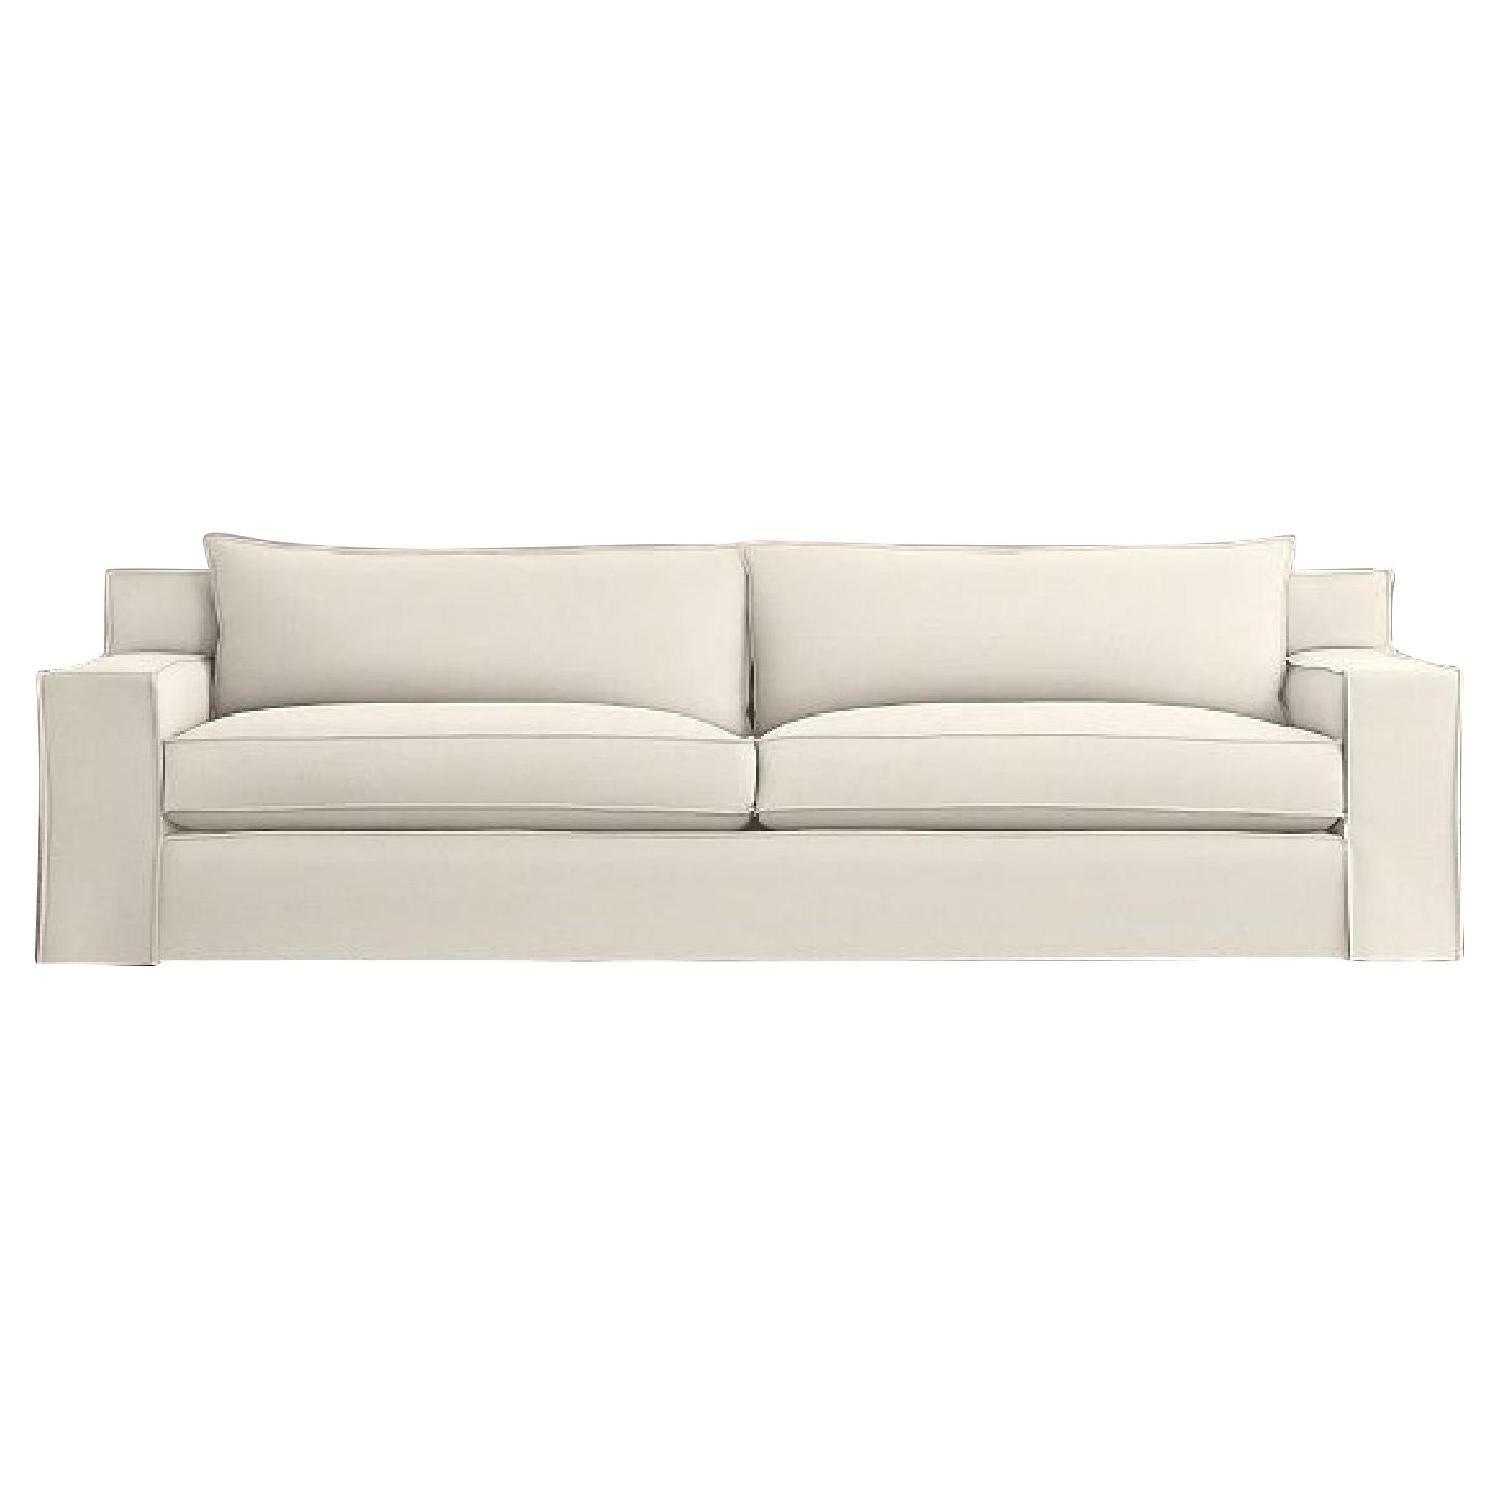 Groovy Restoration Hardware Modern White Slipcovered Sofa Aptdeco Alphanode Cool Chair Designs And Ideas Alphanodeonline